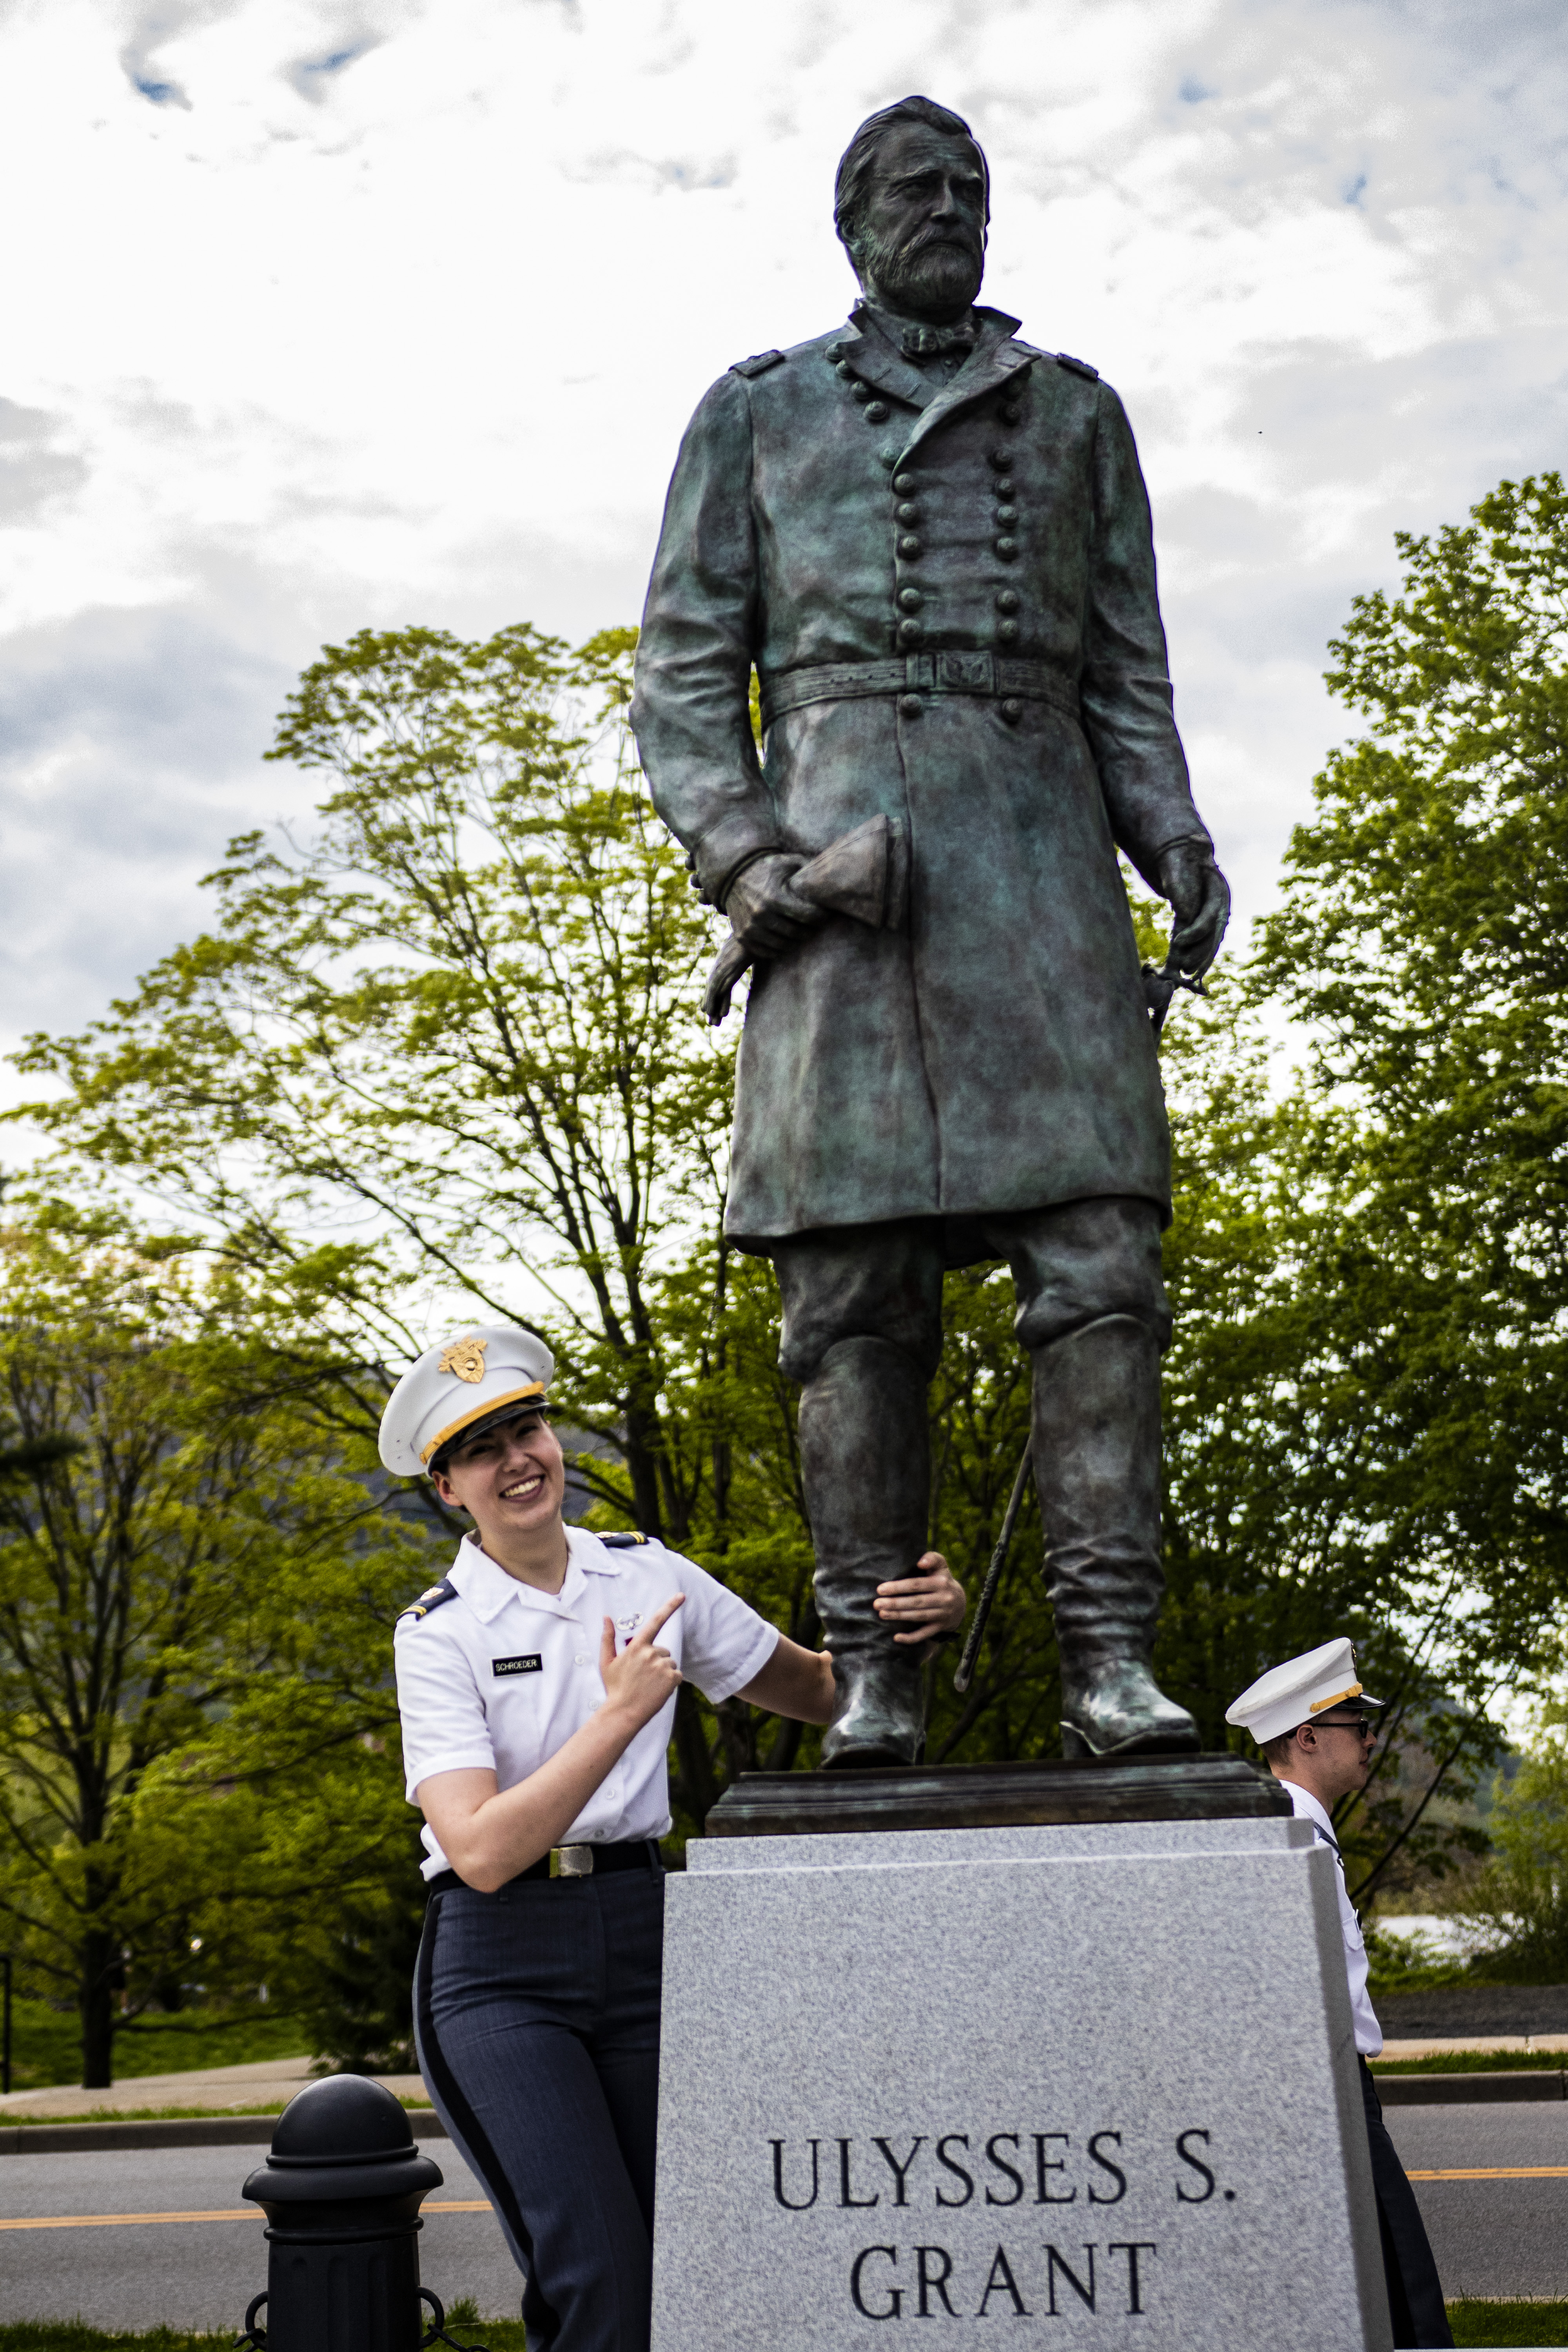 Latter-day Saint cadet Helen Schroeder enjoys fun moment during May 4, 2019, YSA gathering at the United States Military Academy in West Point, New York.